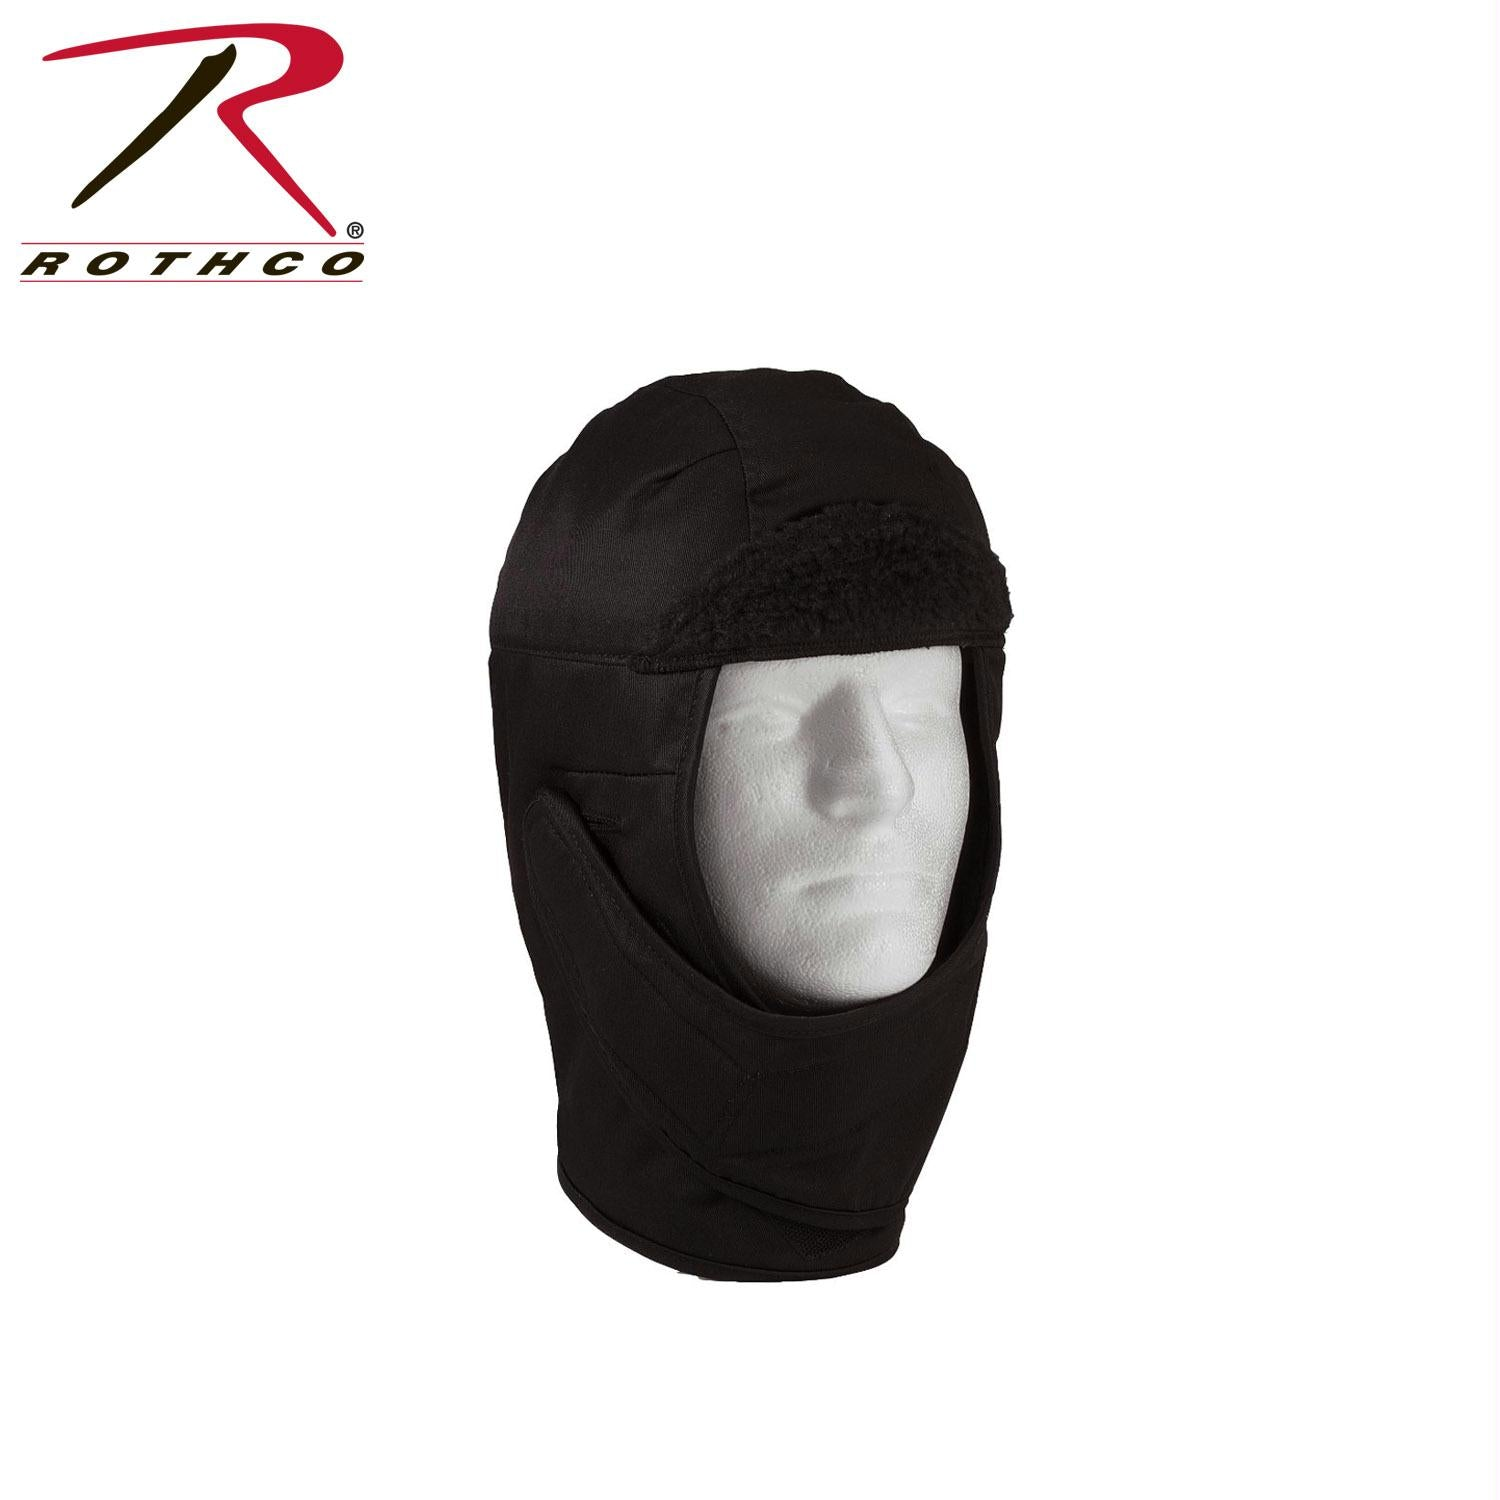 Rothco G.I. Style Cold Weather Helmet Liner - Black / 7 1/2